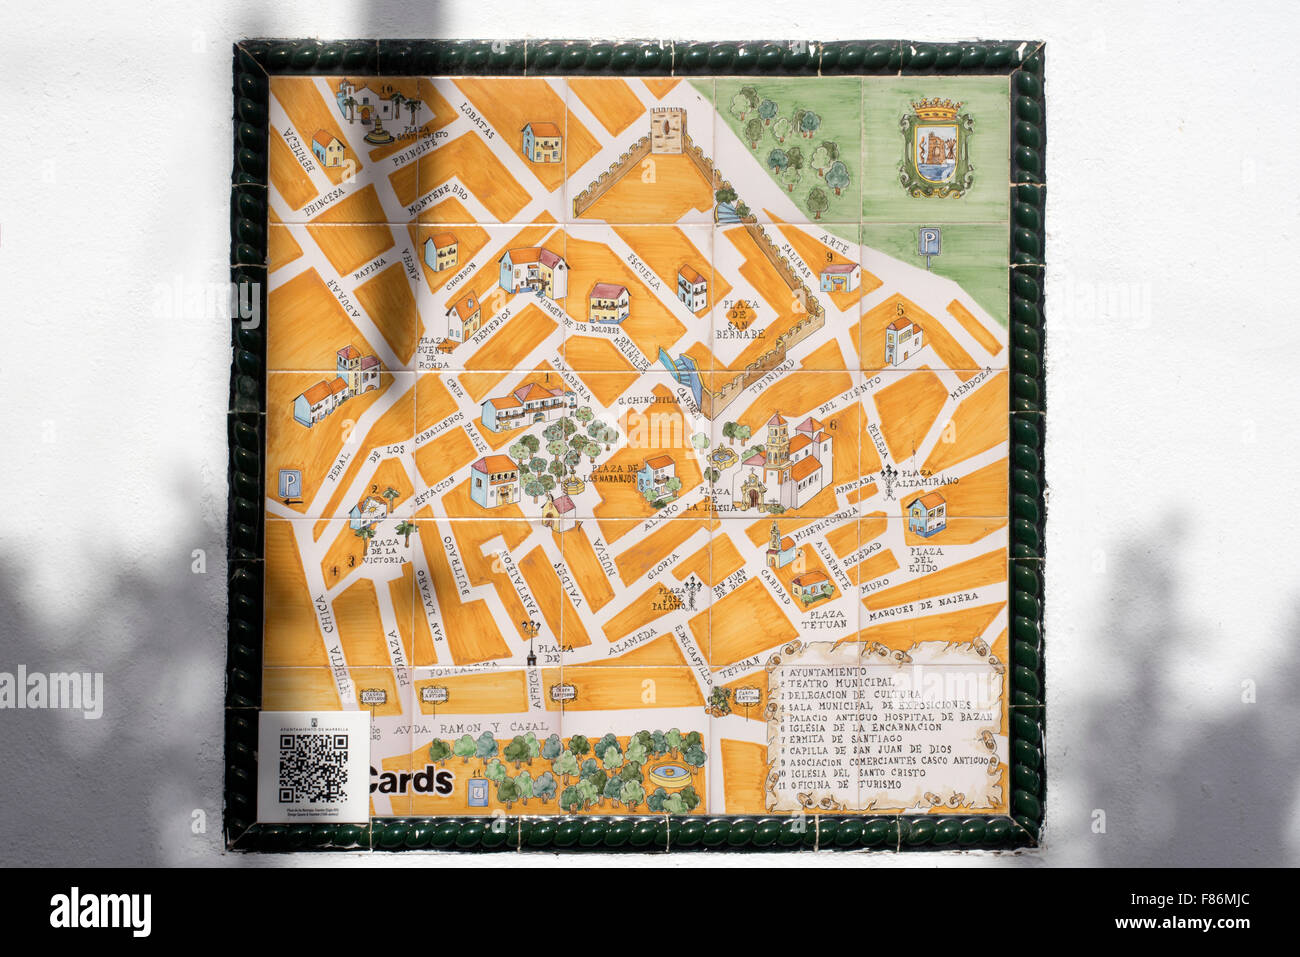 Old Town Map in Plaza de Naranjas Orange Square in the Stylist Town